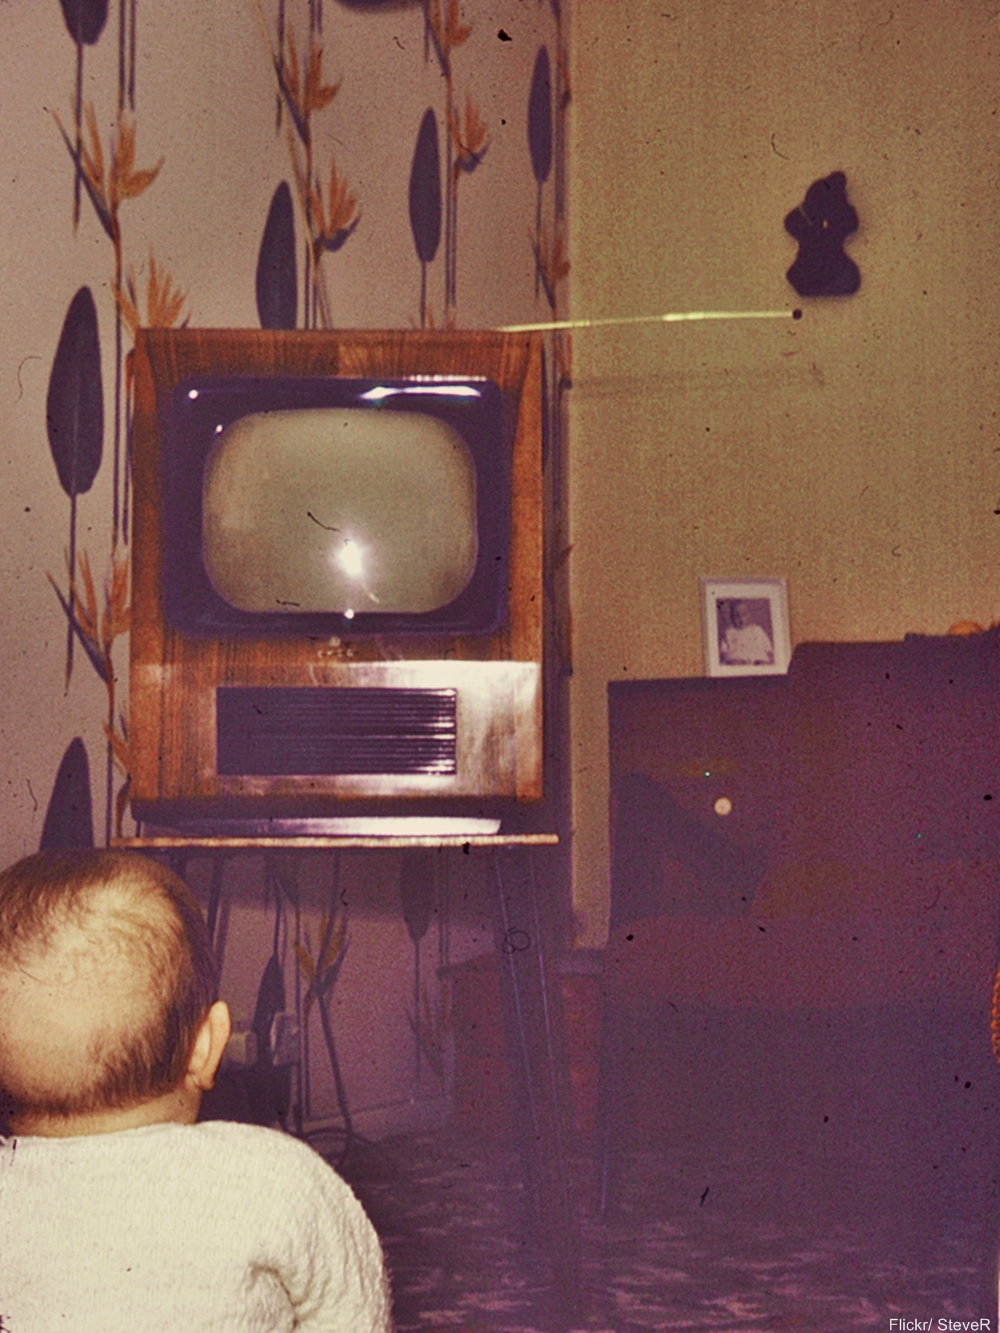 1962 TV in Living Room